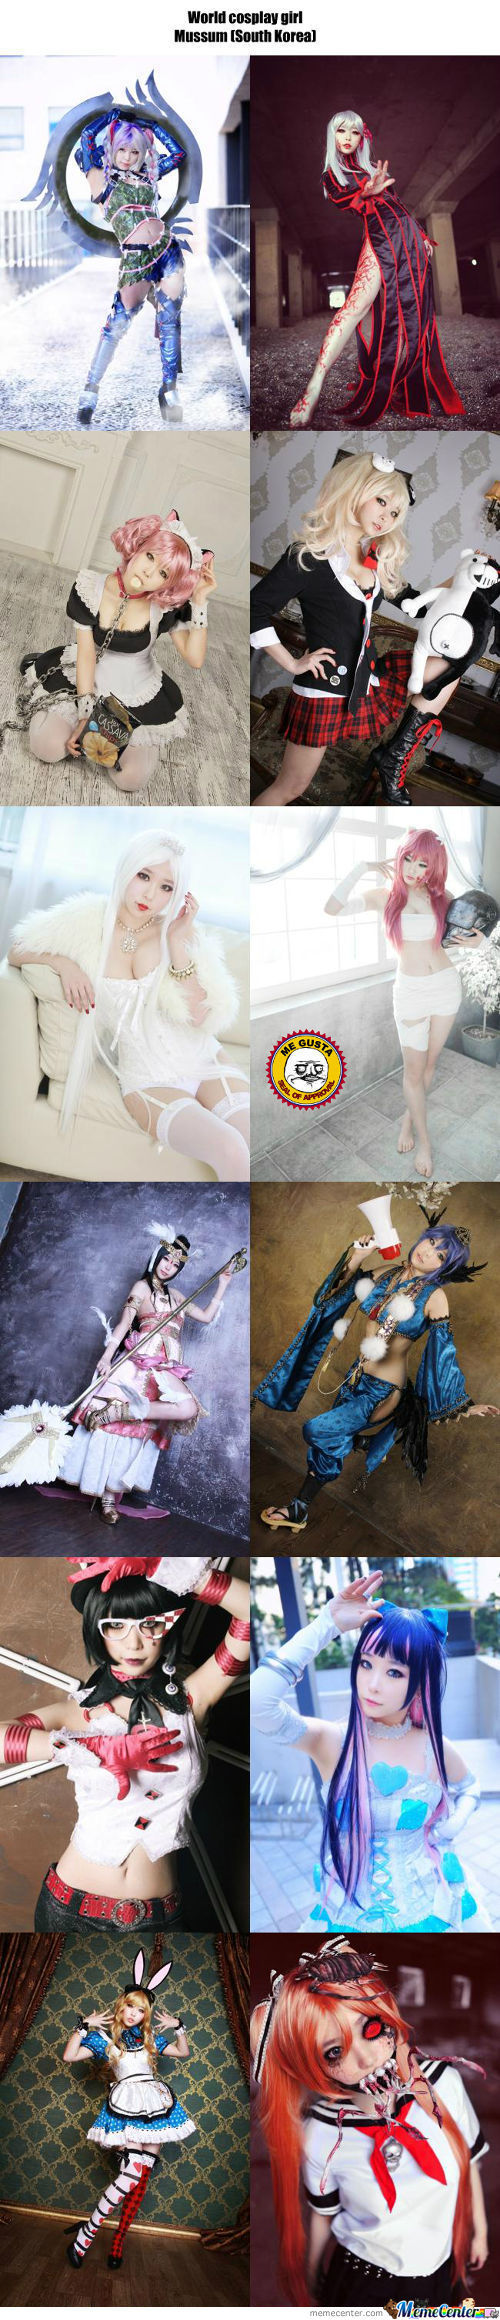 Cosplay Girl 28 : Mussum (South Korea)